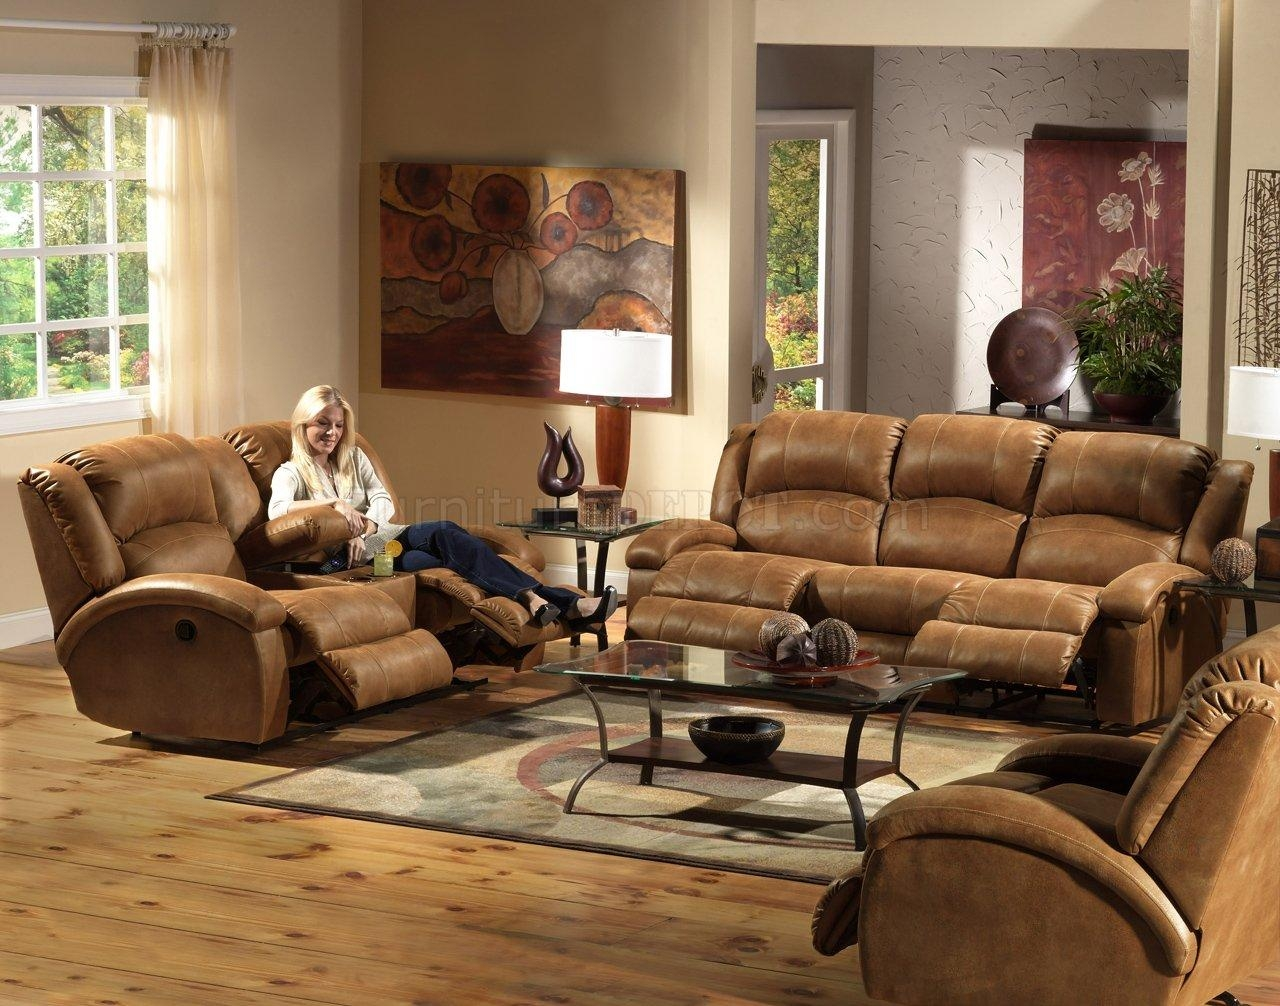 Saddle Faux Leather Dawson Reclining Sofa & Loveseat Set With Regard To Reclining Sofas And Loveseats Sets (Image 17 of 20)